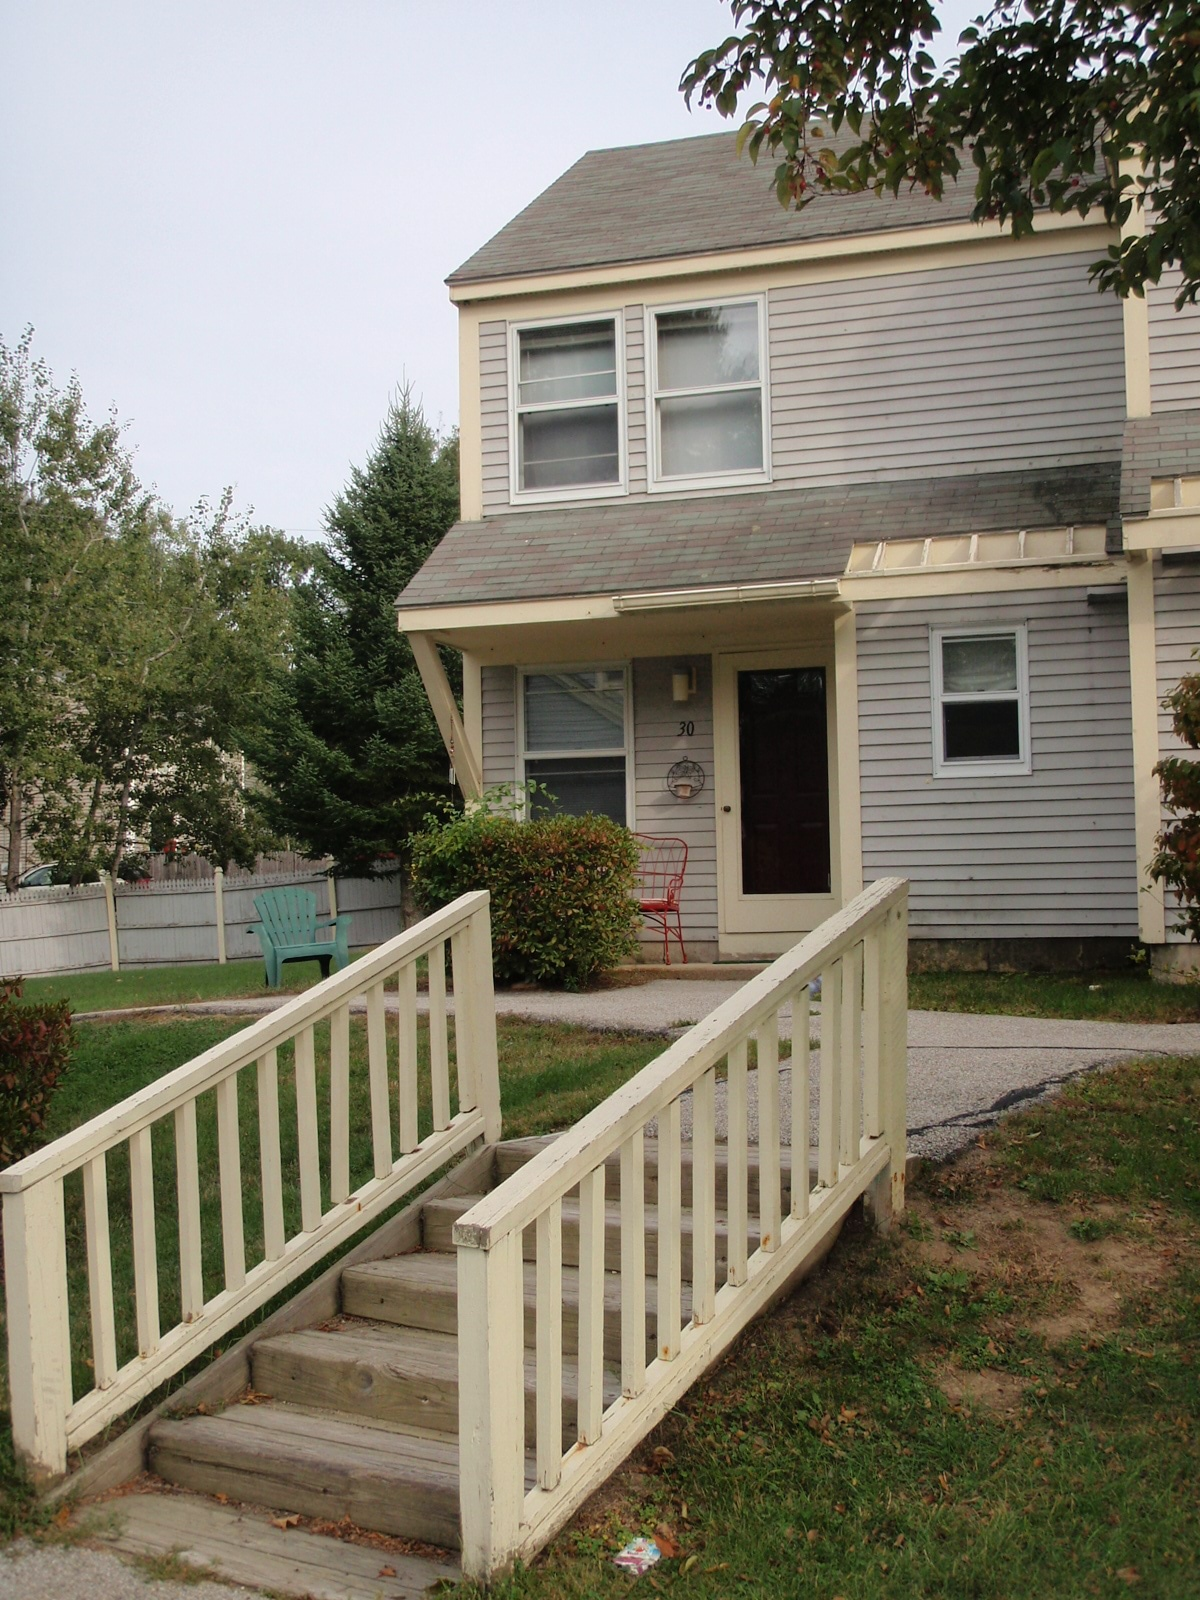 Salmon Falls Estates - Rochester, NH Apartments for rent